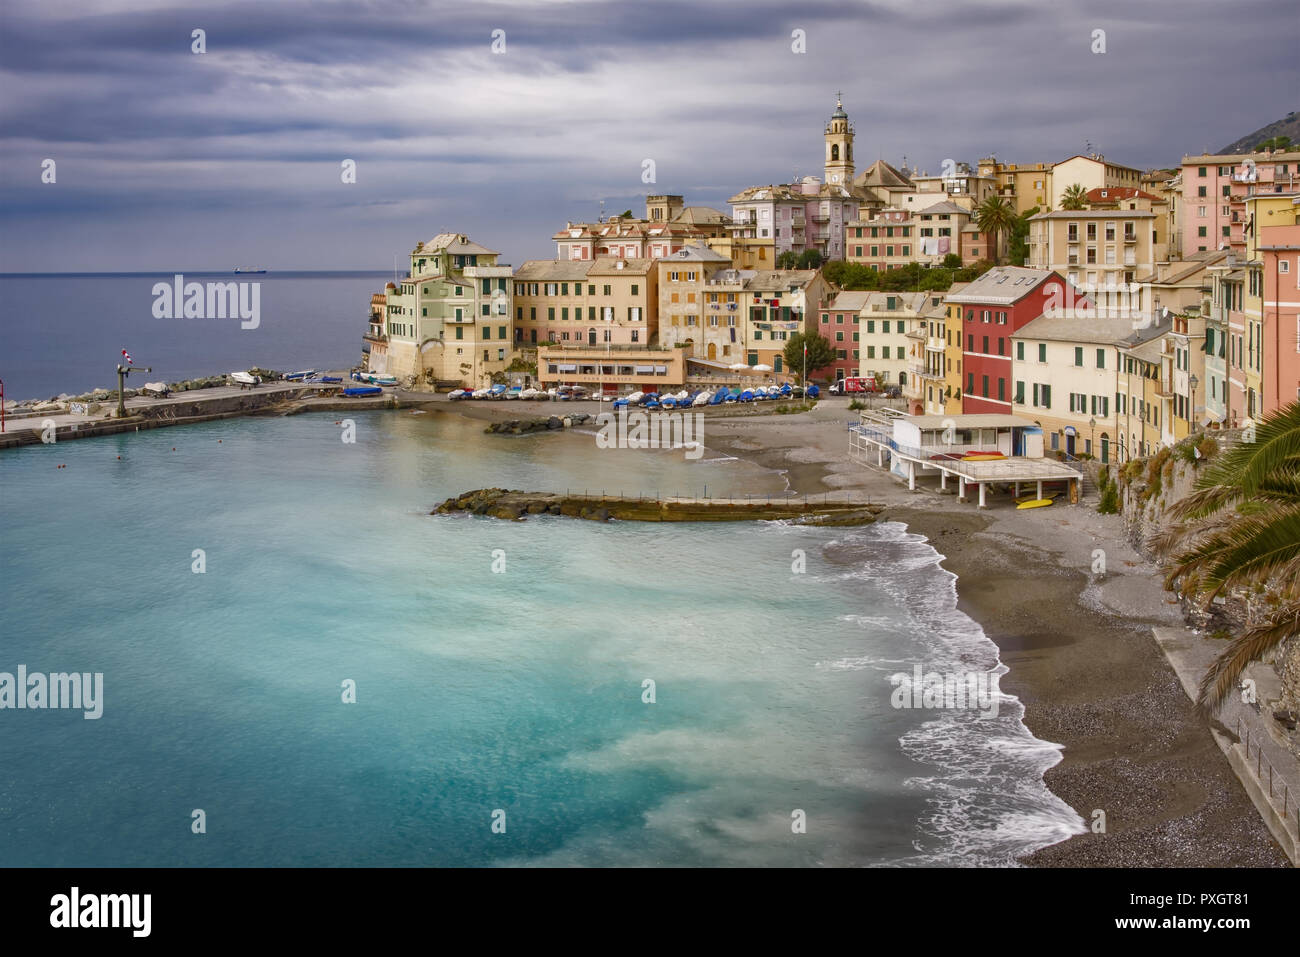 Waterfront and beach at Bogliasco, Italy with gentle surf lapping the sandy shore in front of colorful buildings under a cloudy sky in a tourism and t - Stock Image